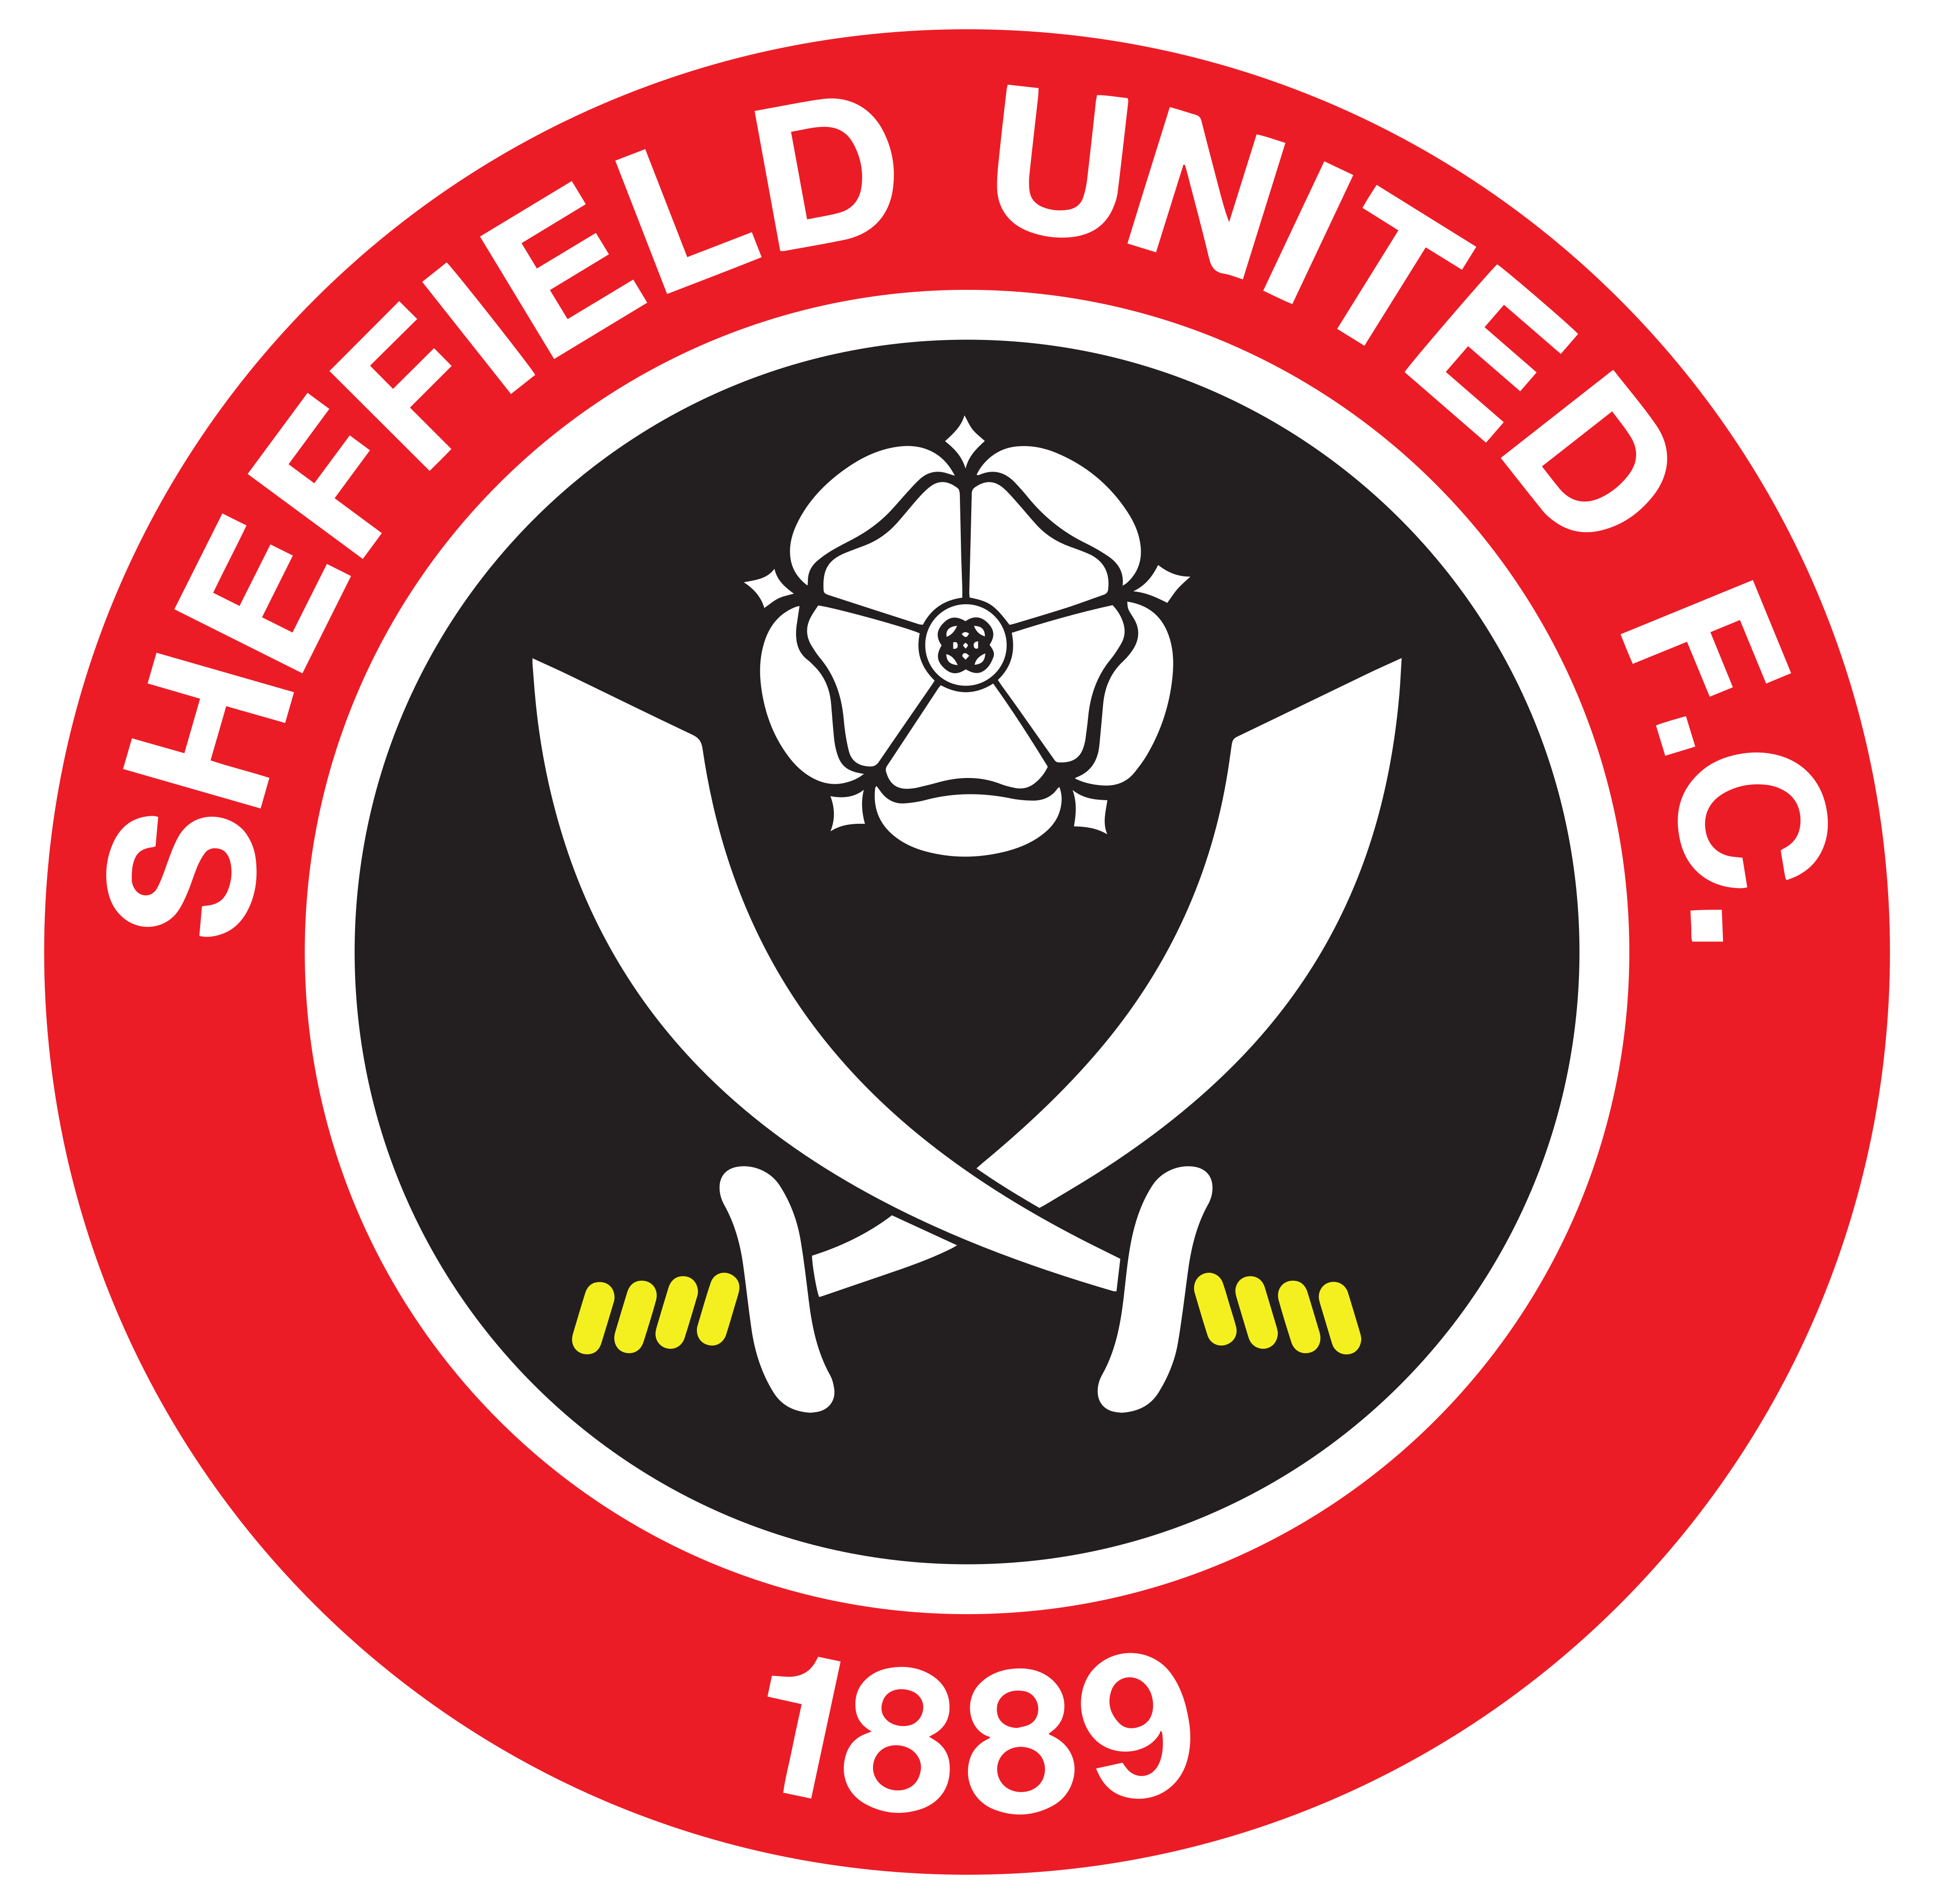 sheffield united logo - Sheffield United FC Logo